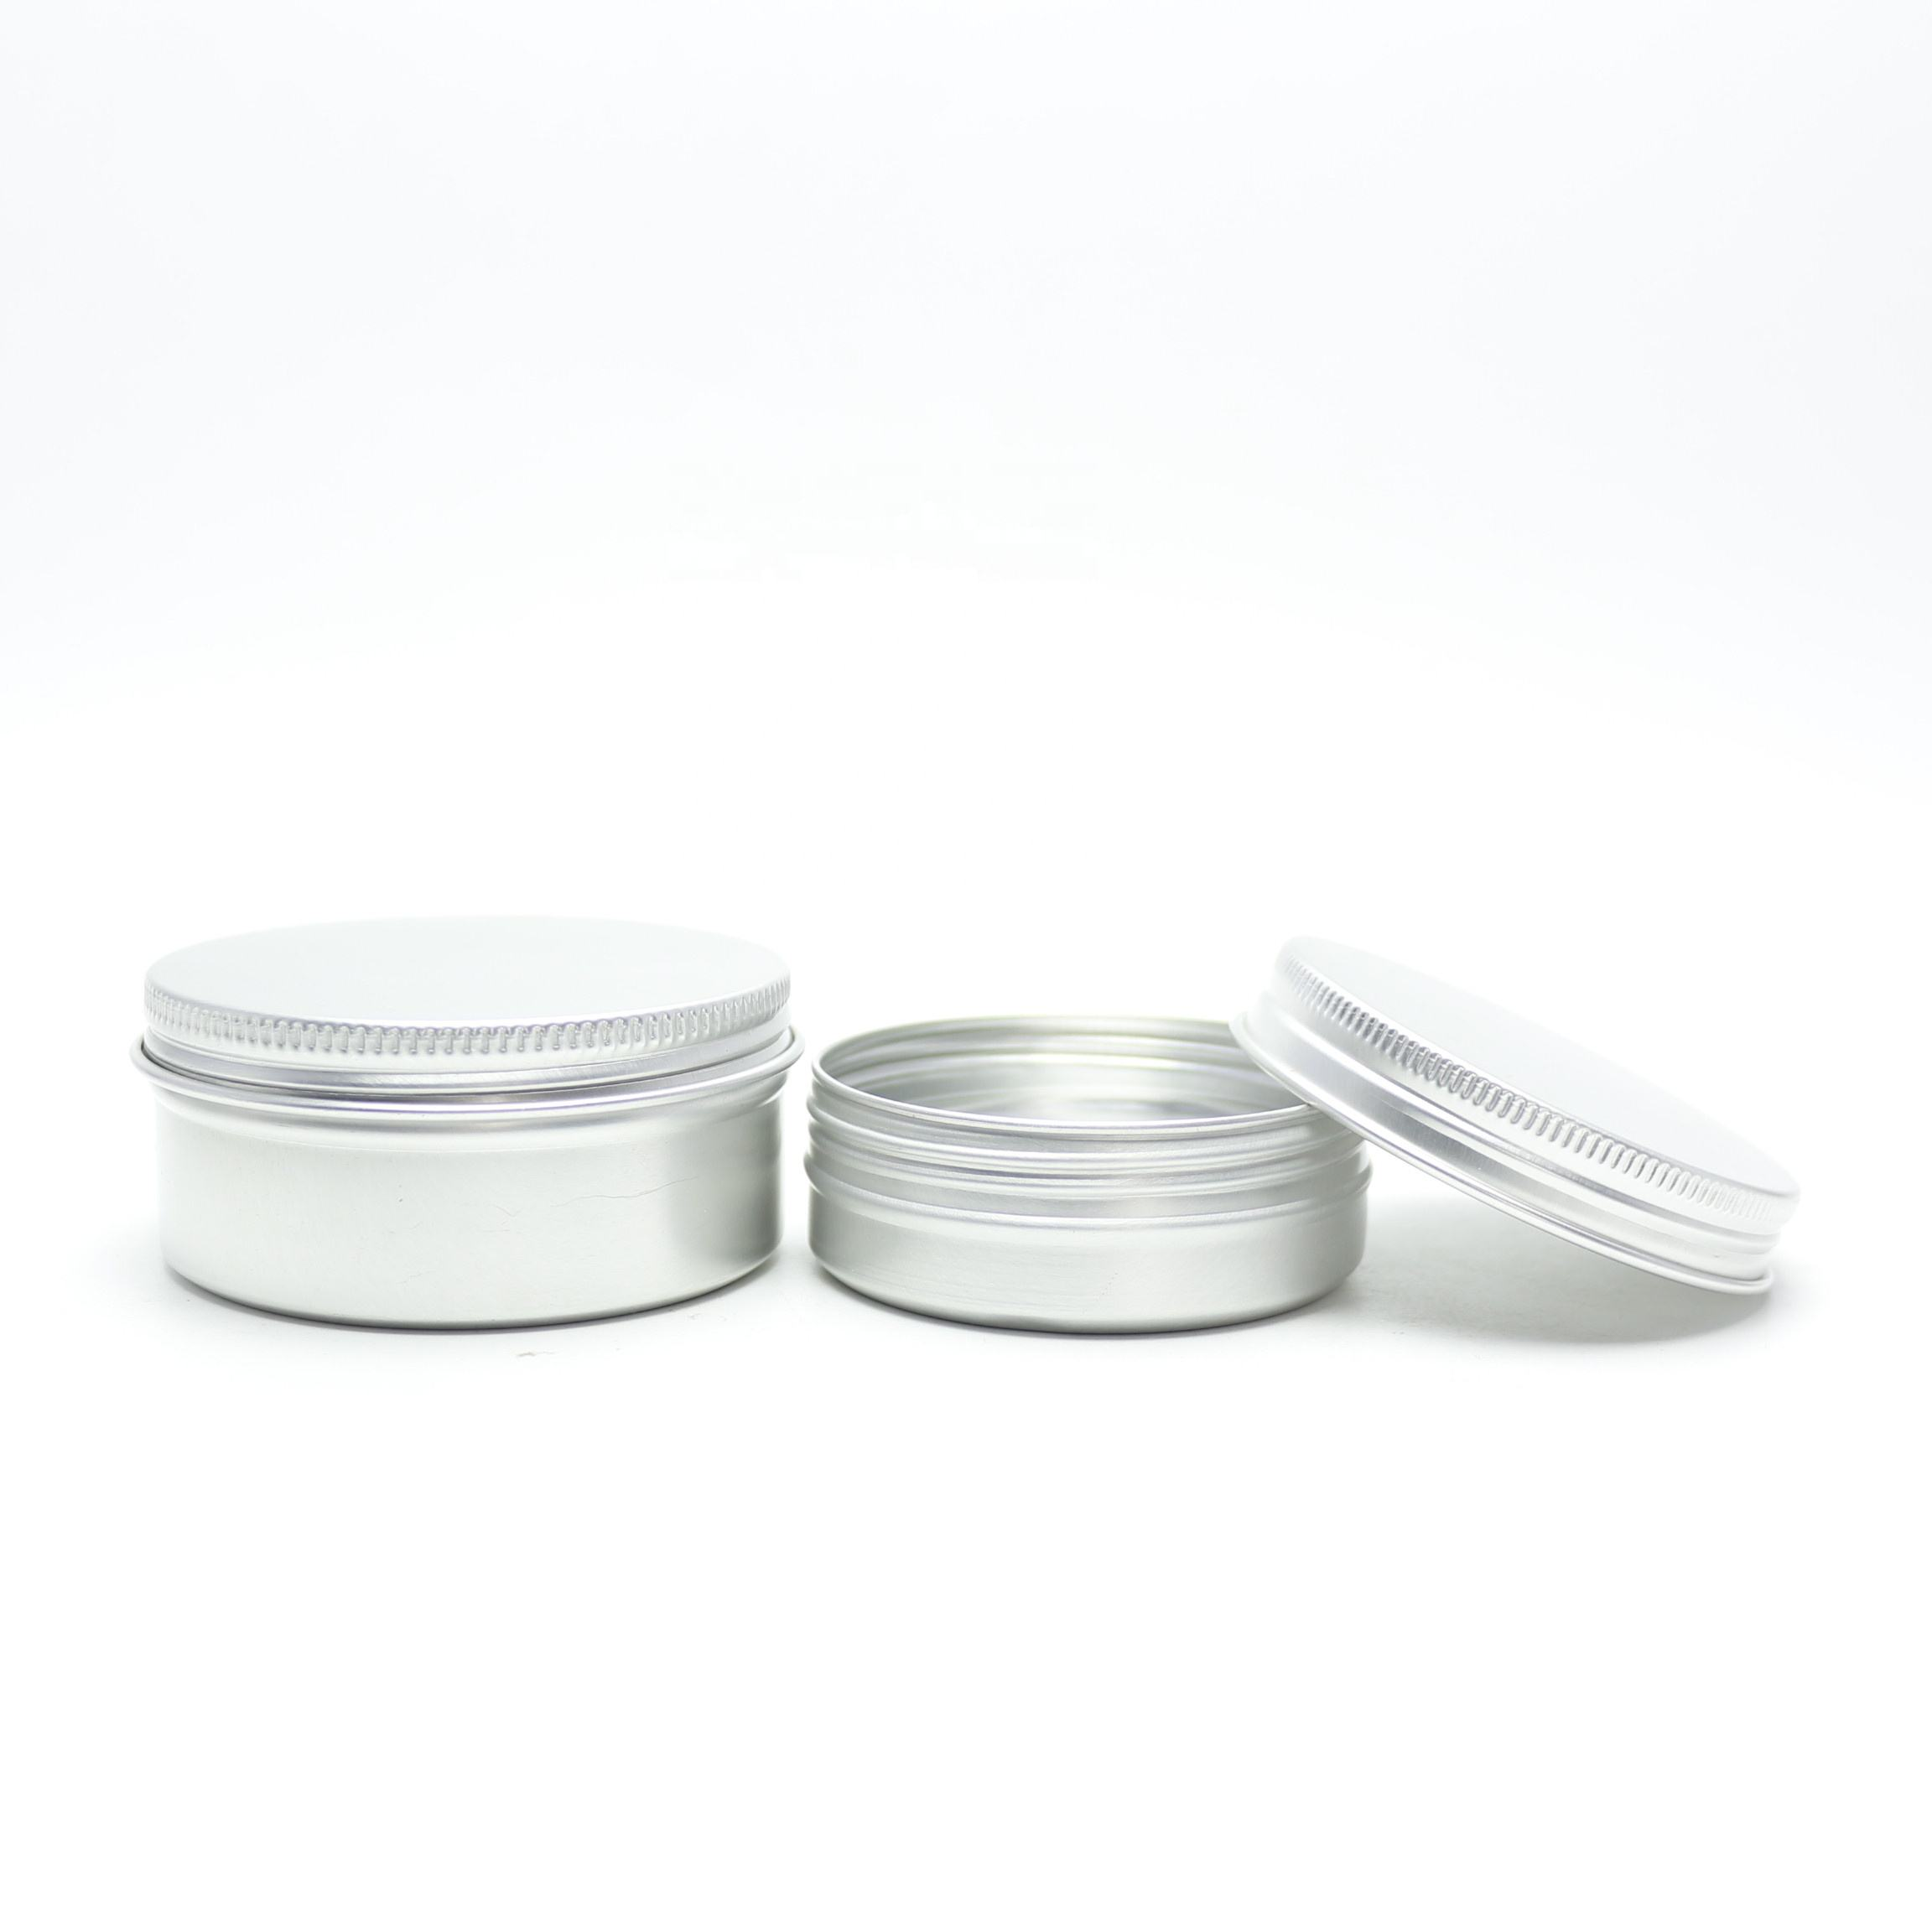 d82*h27mm 100g pomade container 100 ml aluminum tin jar AJ-008T